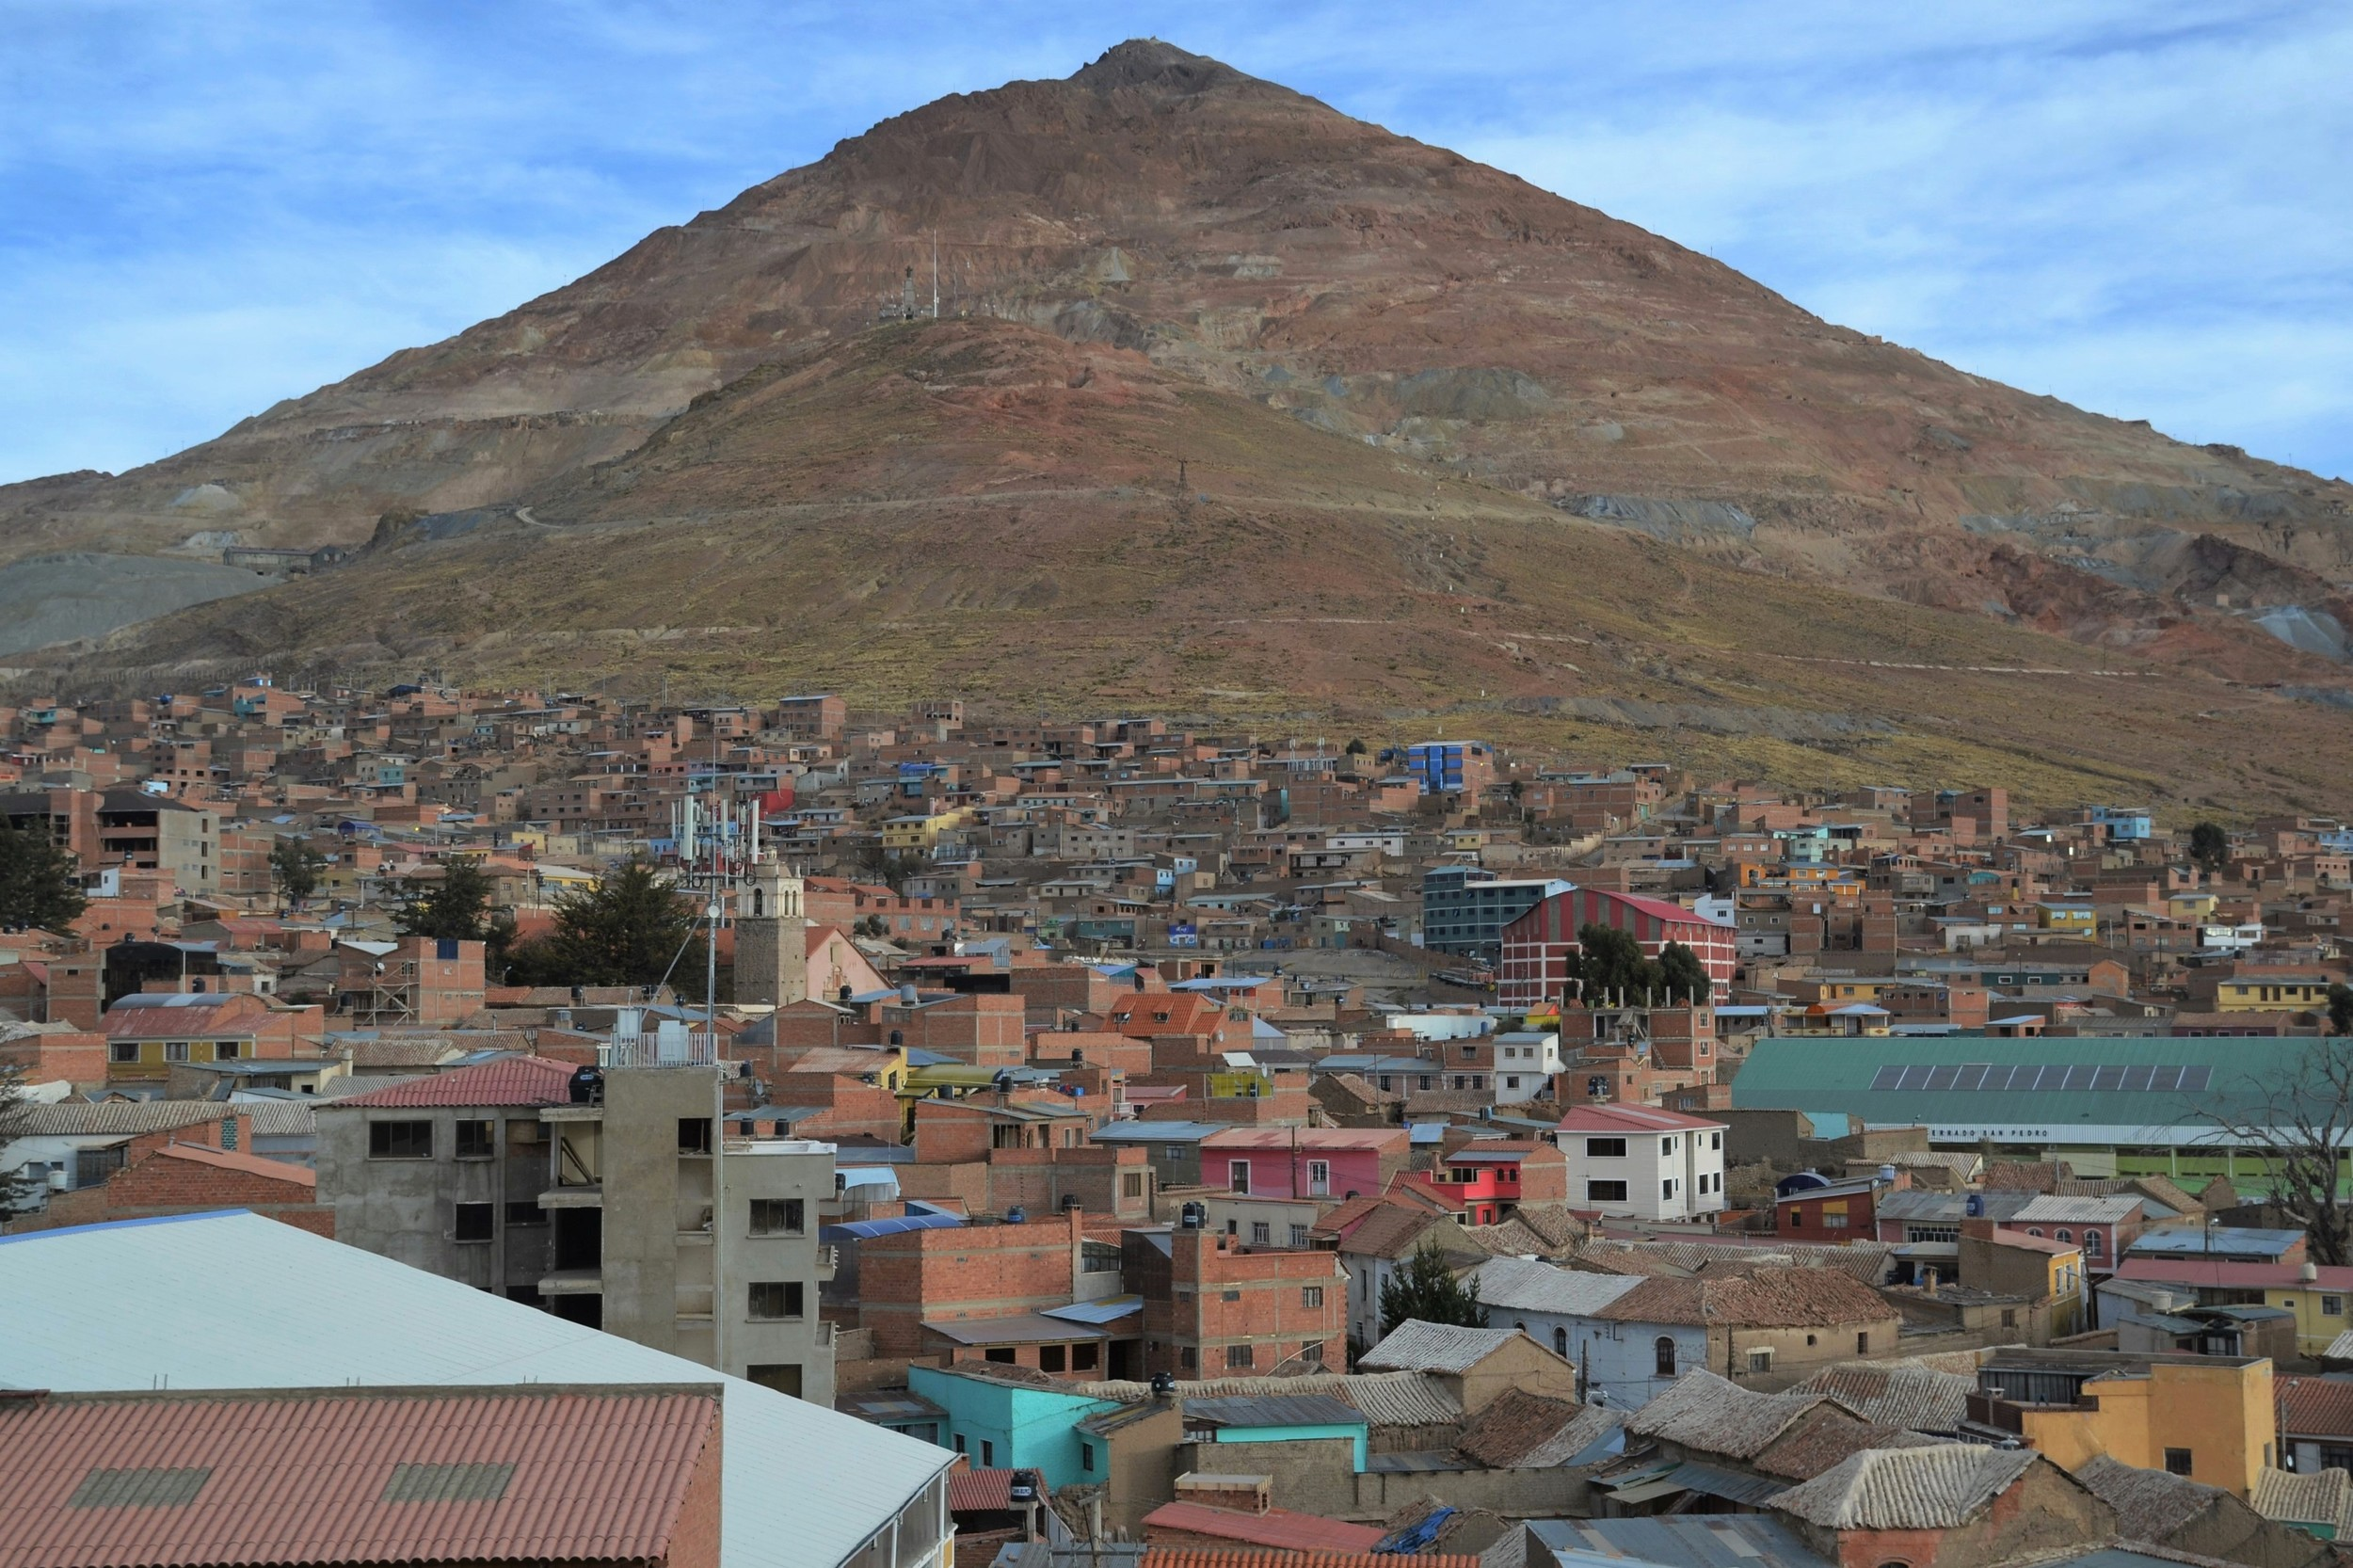 The city of Potosi, and Cerro Rico overlooking it.